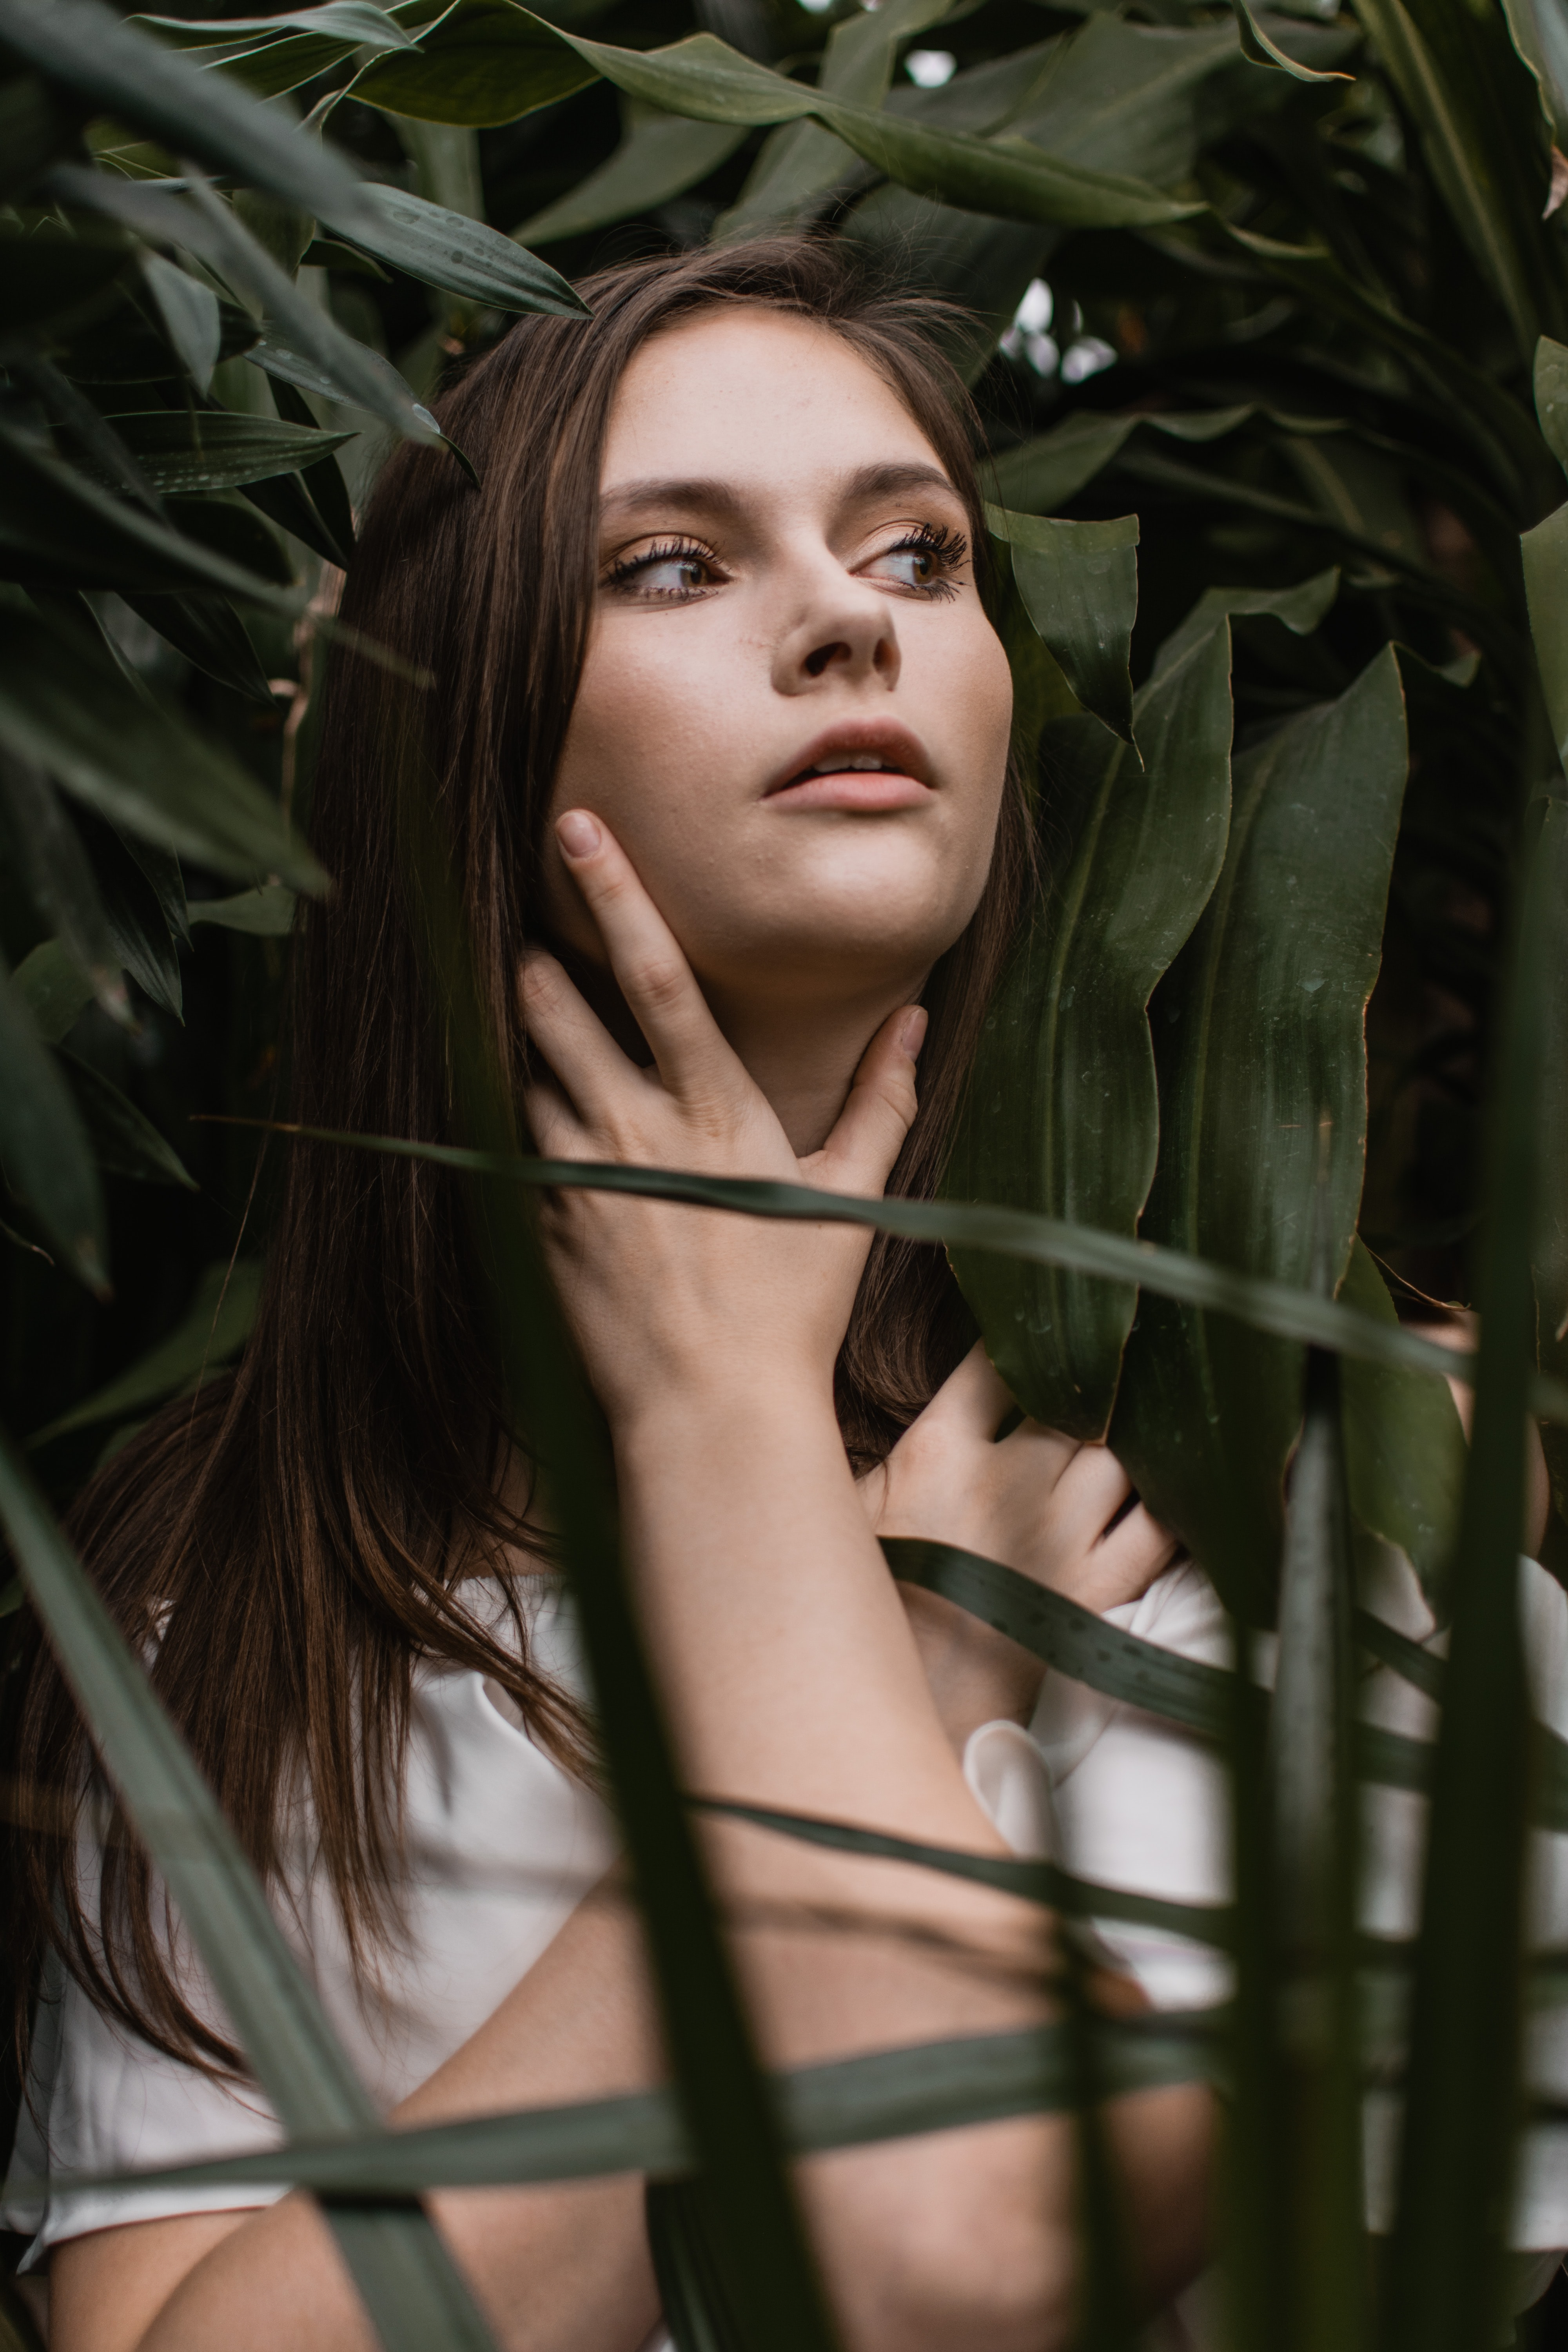 close-up photo of woman holding her neck while standing near plants during daytime